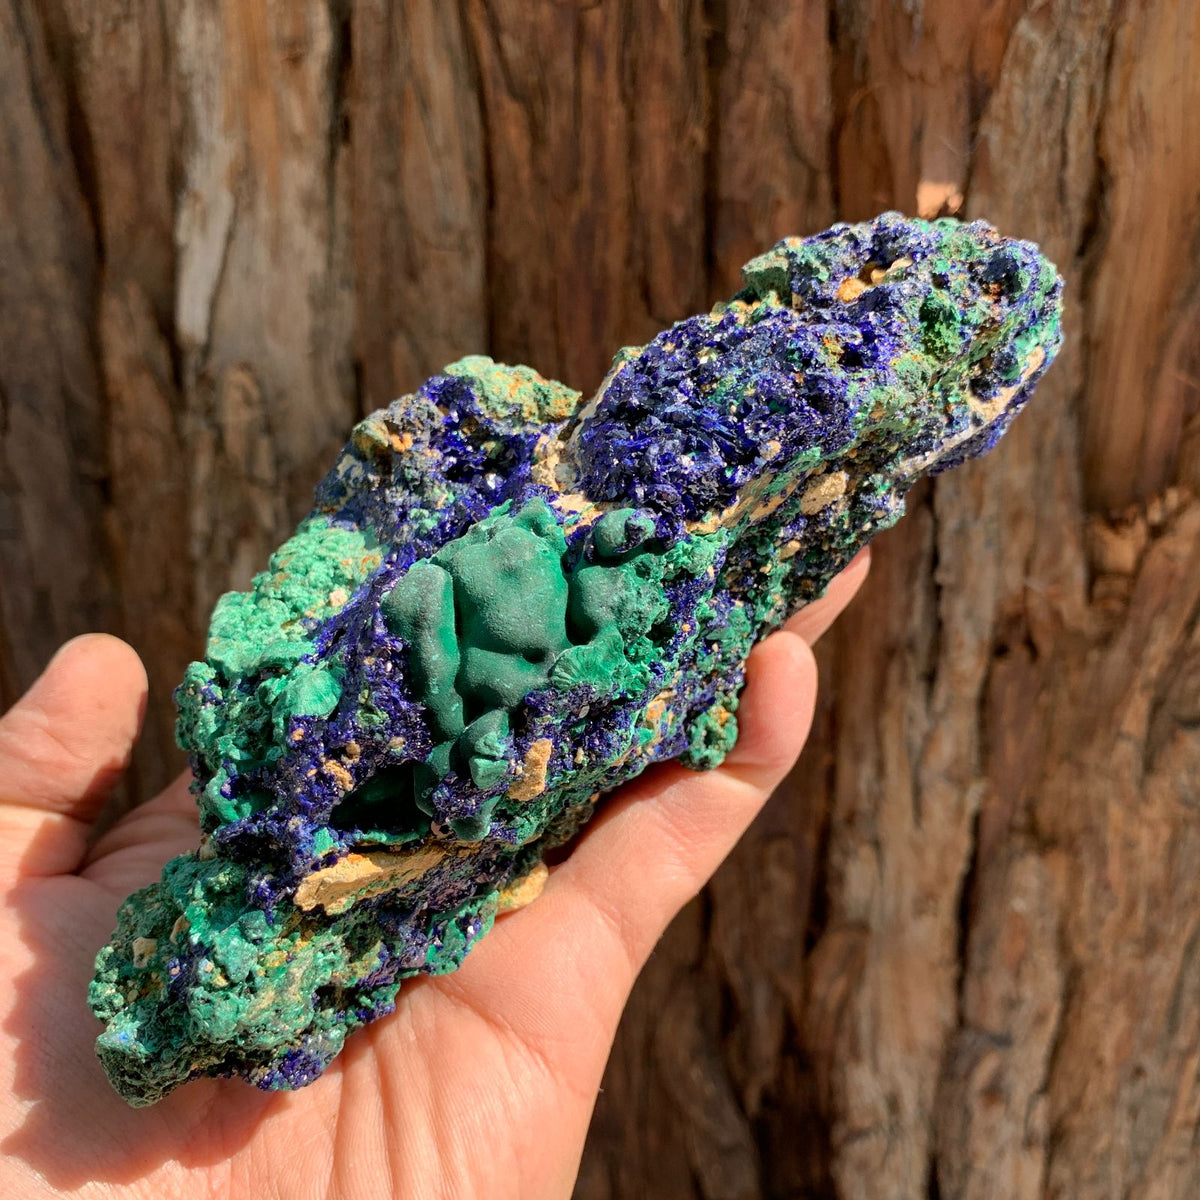 16.5cm 618g Azurite from Sepon Mine, Laos